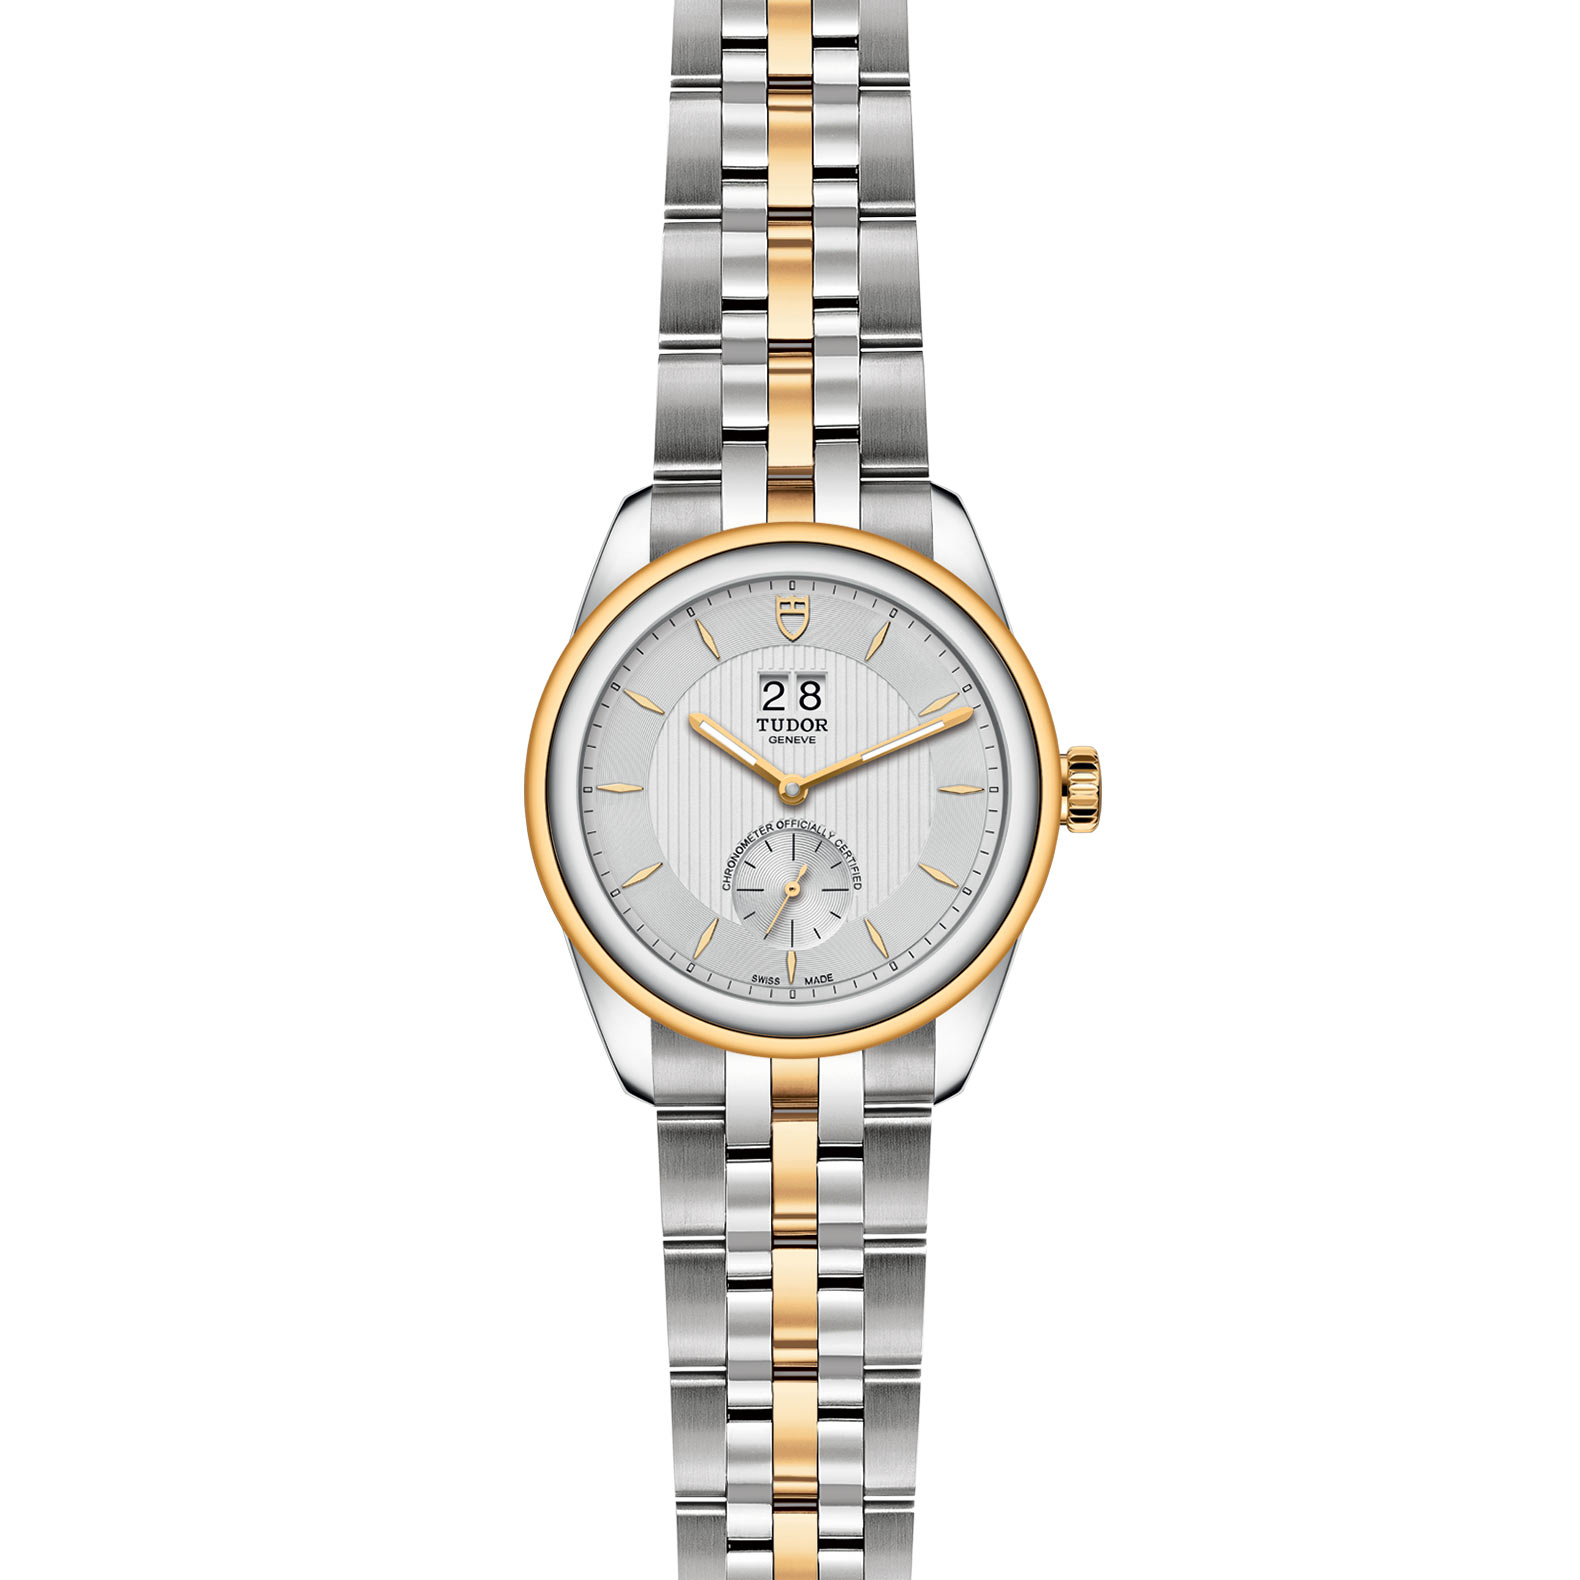 TUDOR Glamour Double Date M57103 0001 Frontfacing